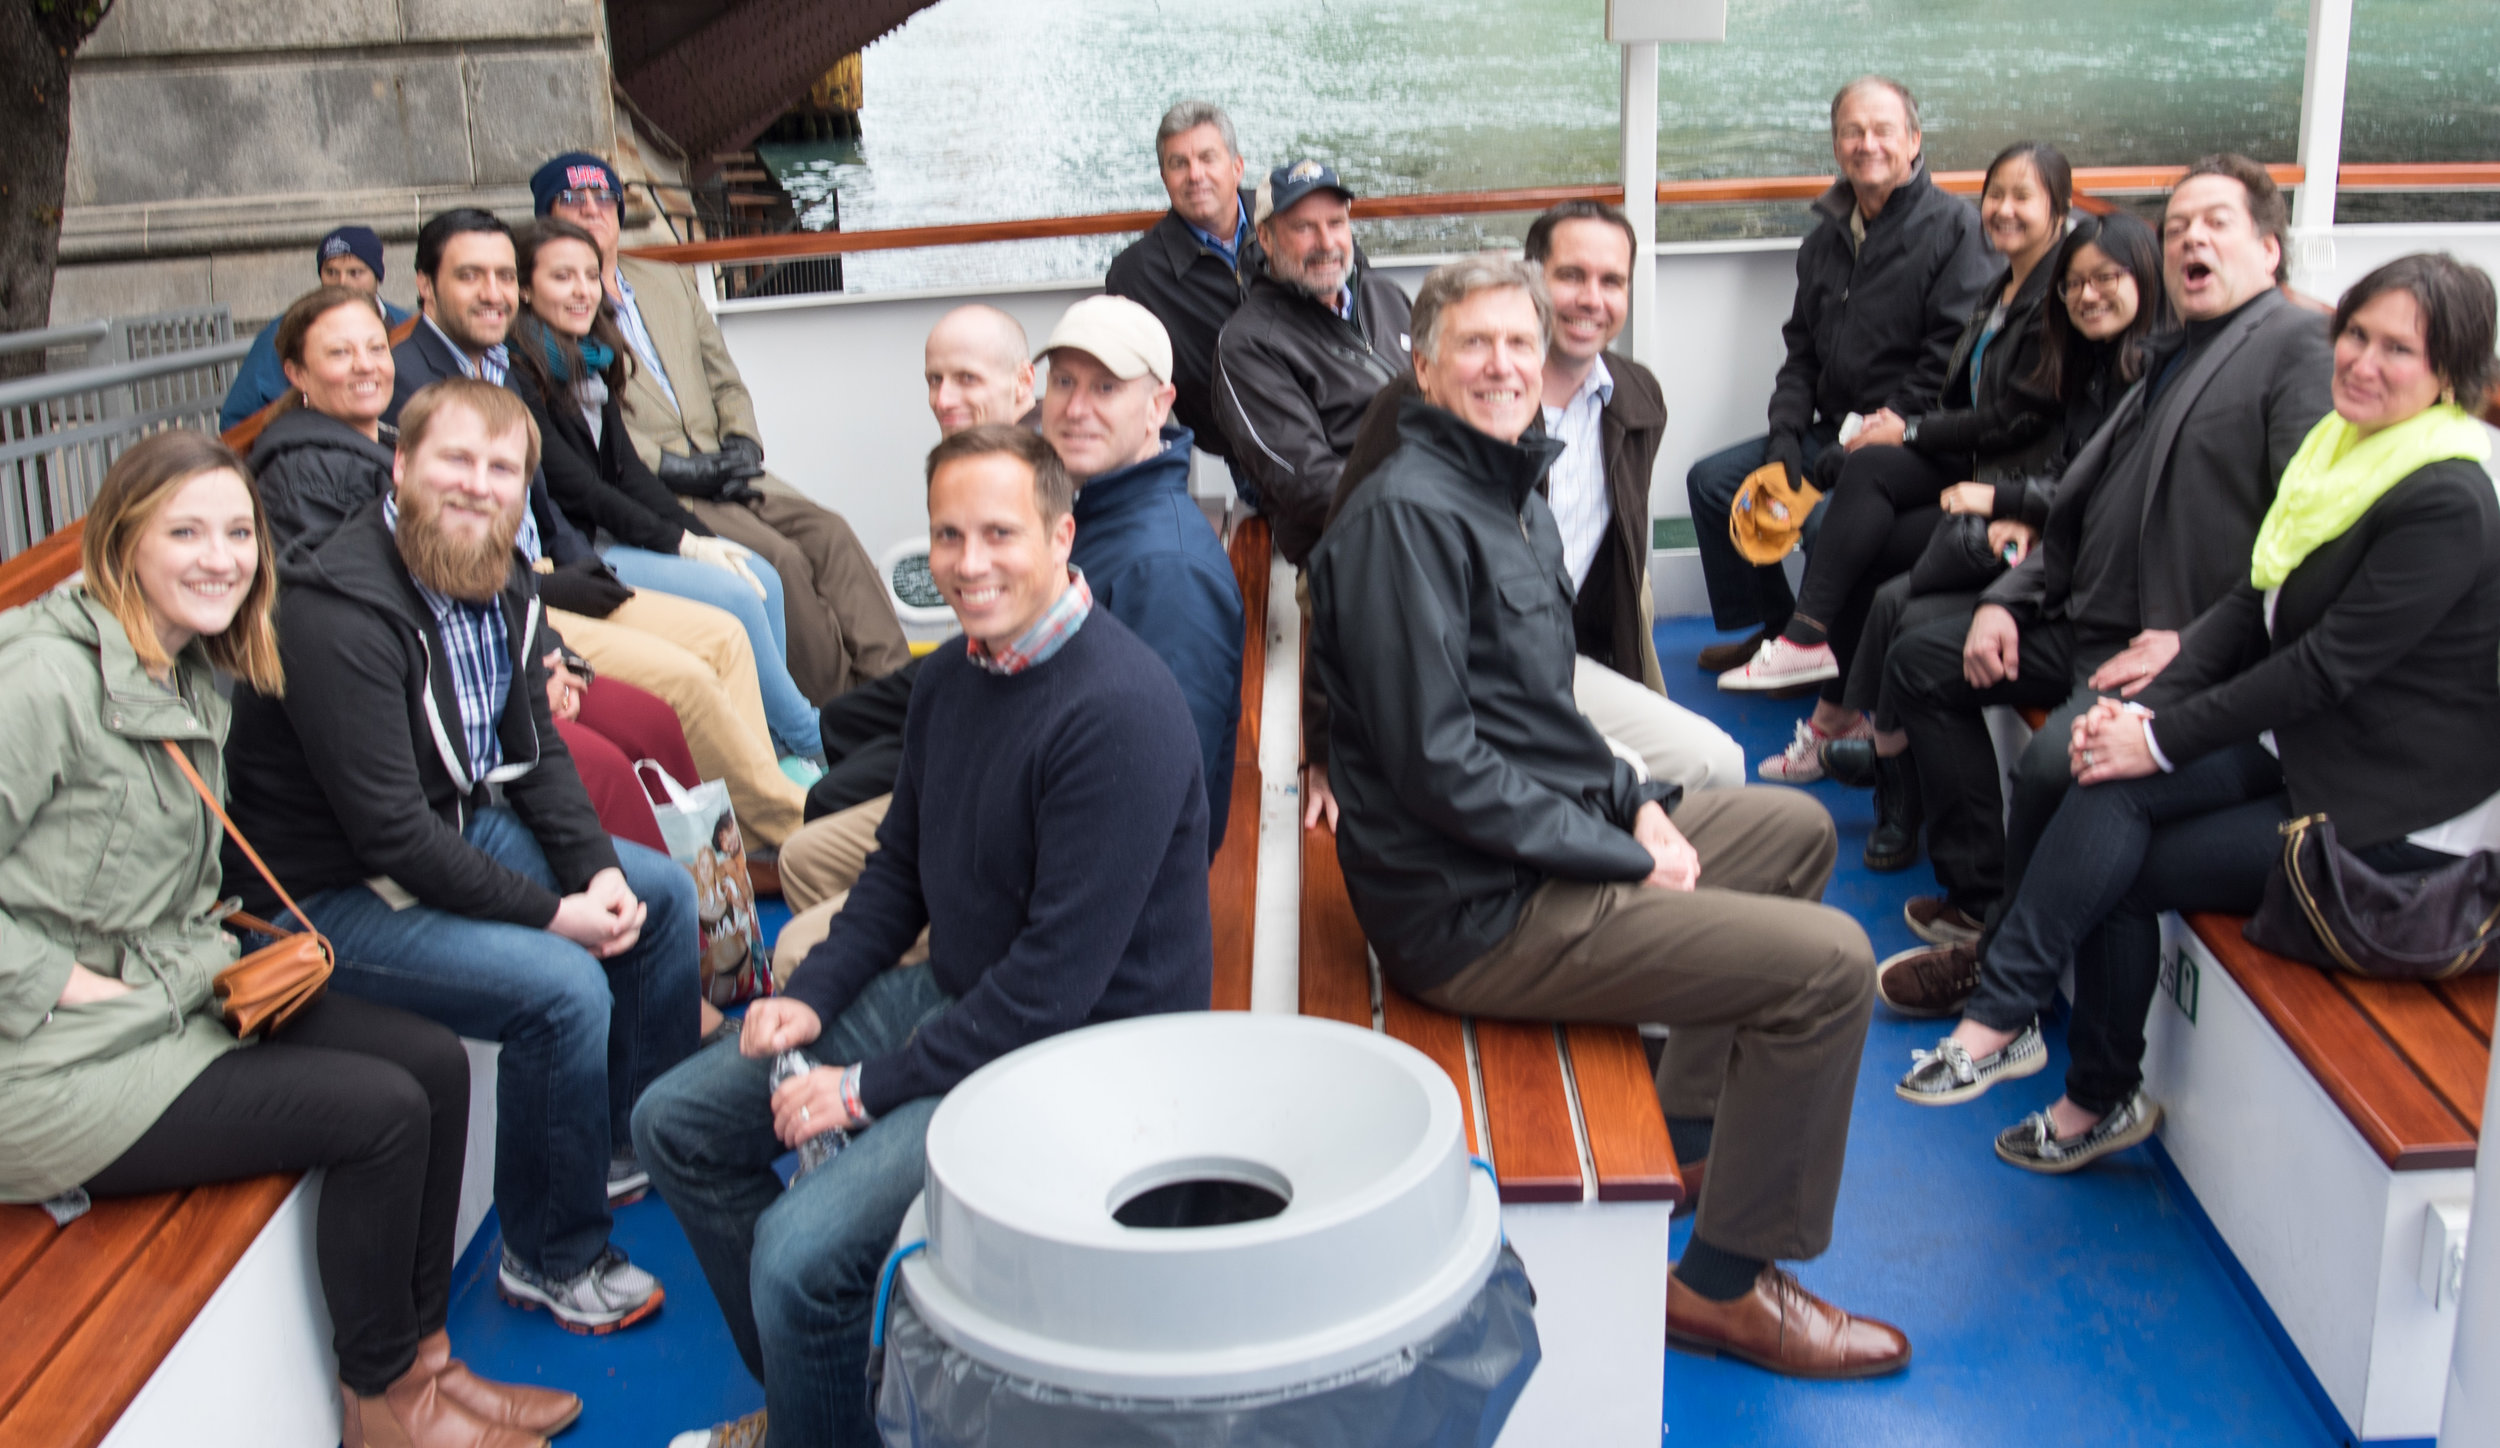 MACH in Chicago boat tour group photo